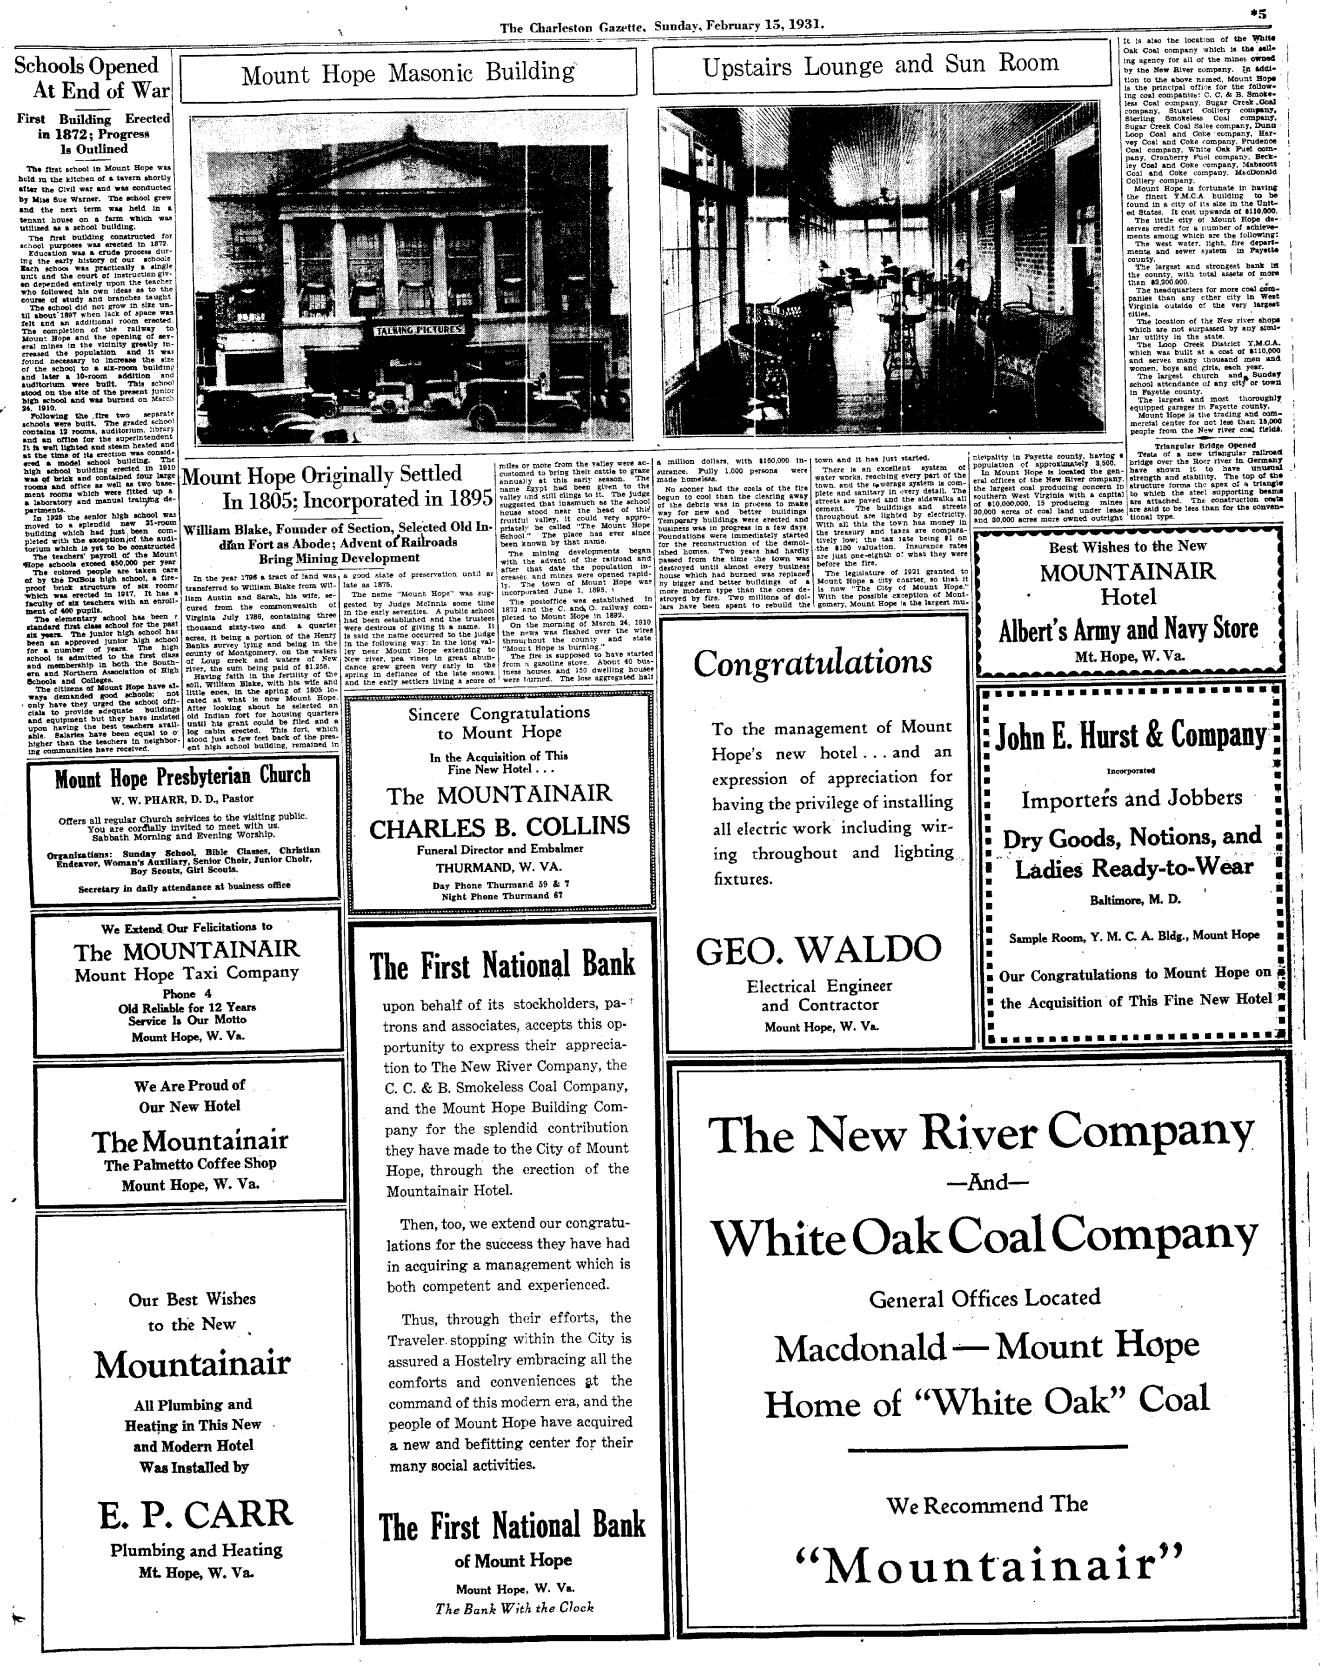 This is part of a special section of the Charleston Gazette that featured all the amenities of the town of Mount Hope offered travelers to the area.